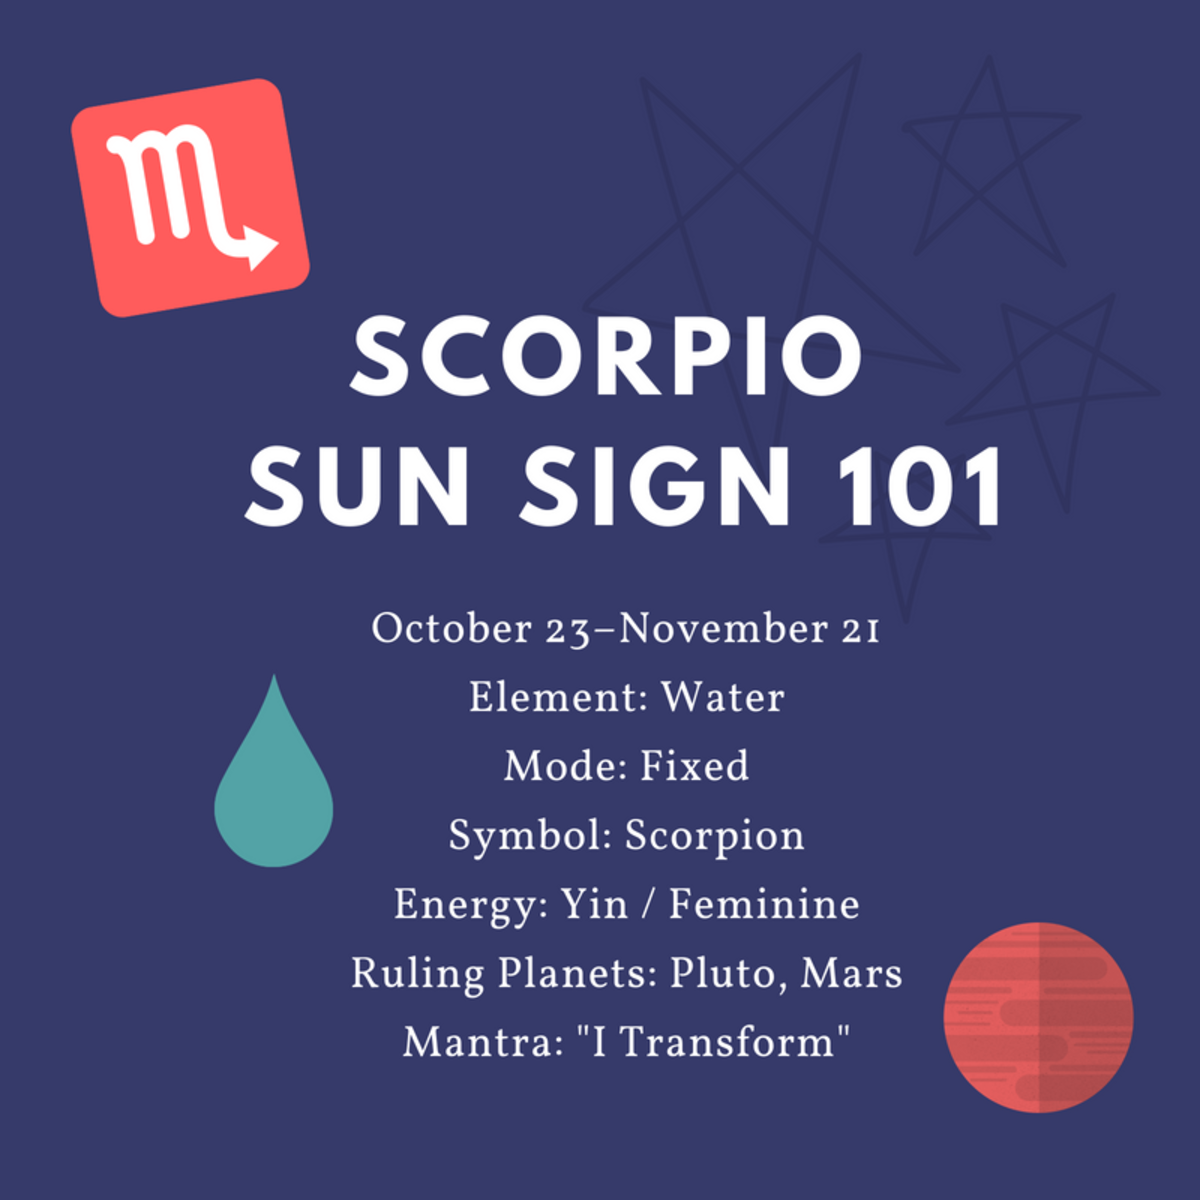 Why Do Scorpio Men Withdraw and Seem Distant?